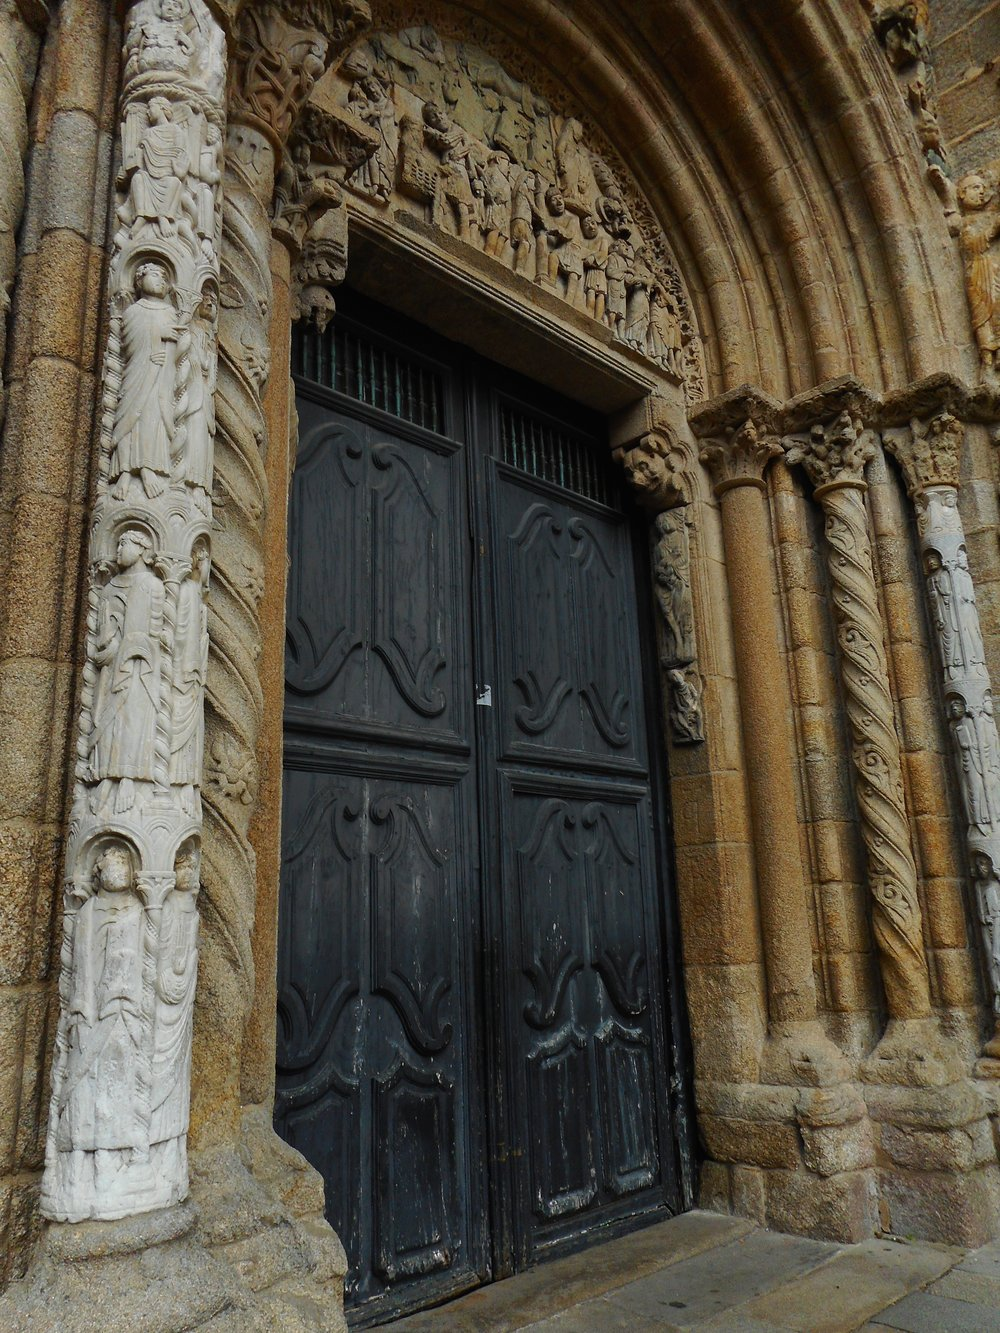 One of the entrances to the cathedral with its beautiful stonework